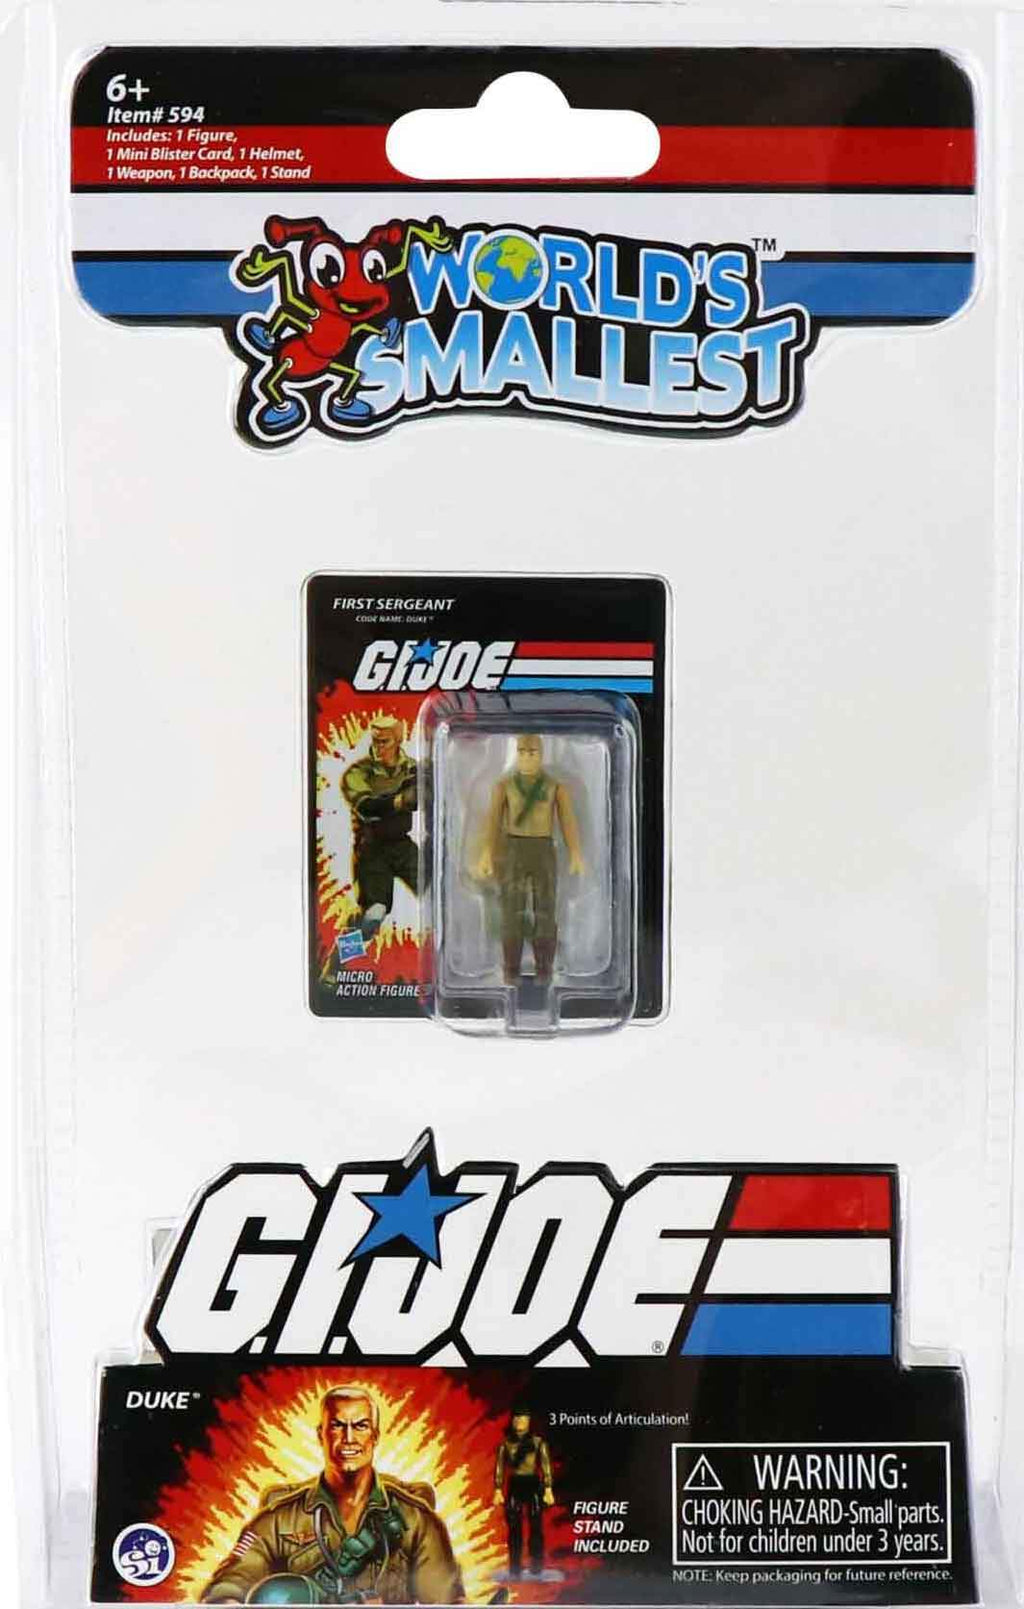 World's Smallest GI Joe vs Cobra - Duke in package